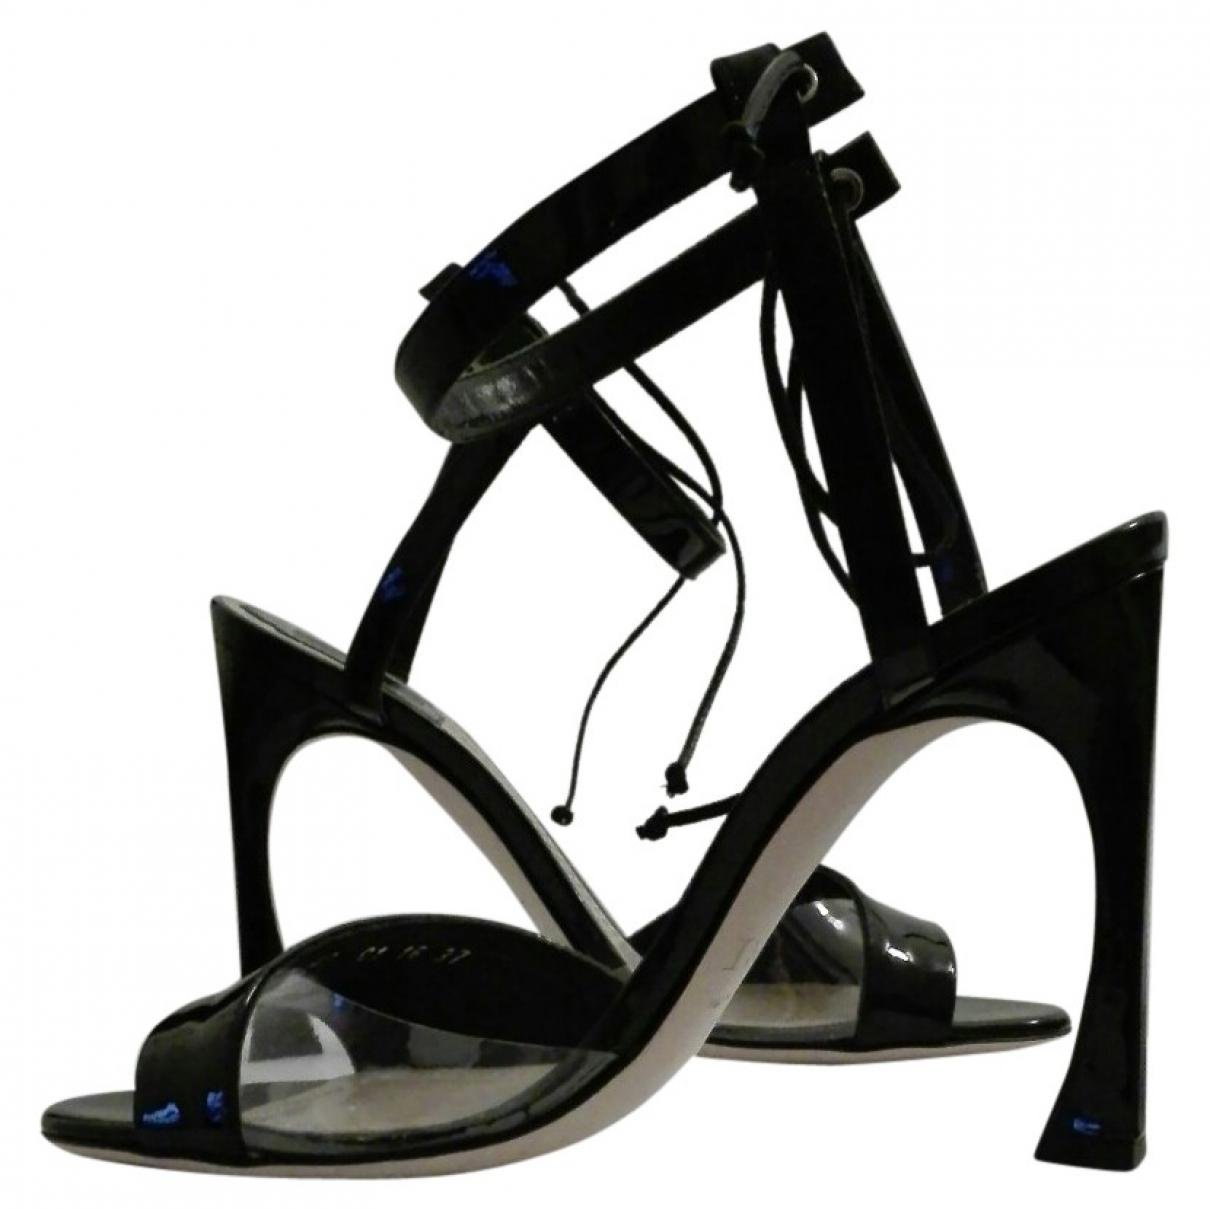 Pre-owned - Patent leather sandals Dior 3Zuuk